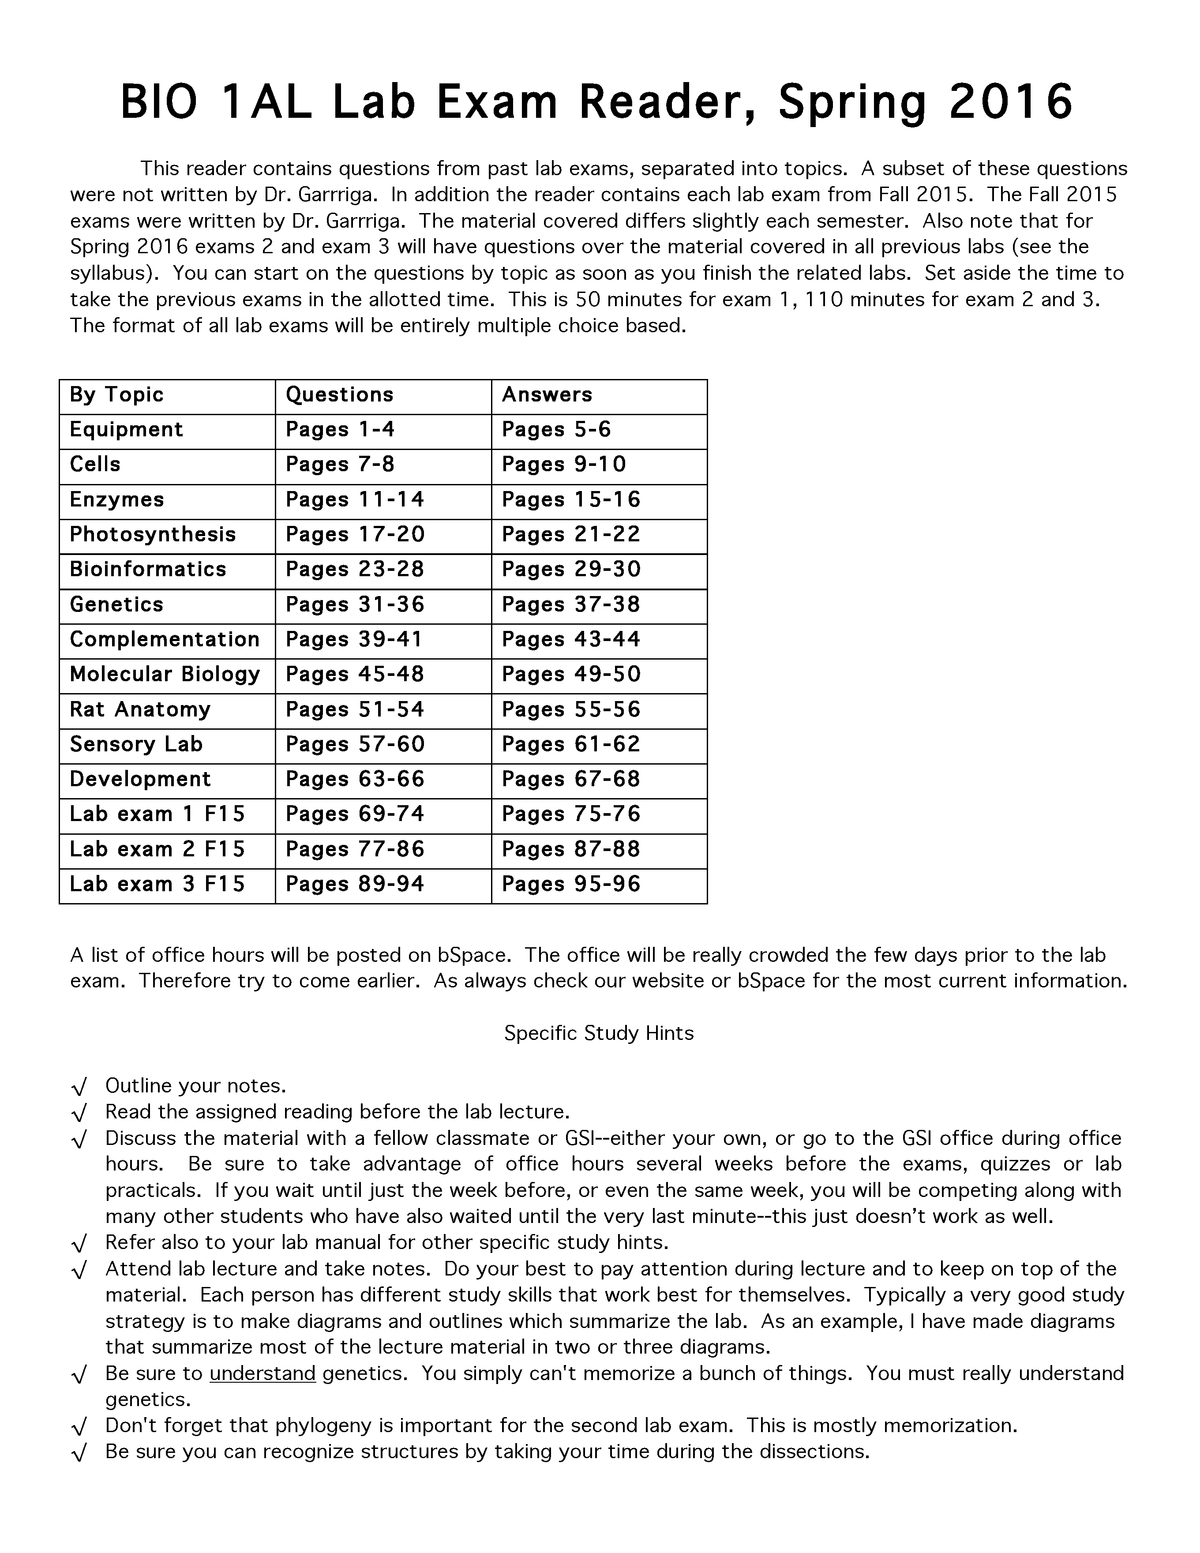 Exam Spring 2016, questions and answers - BIOLOGY 1AL - UCB